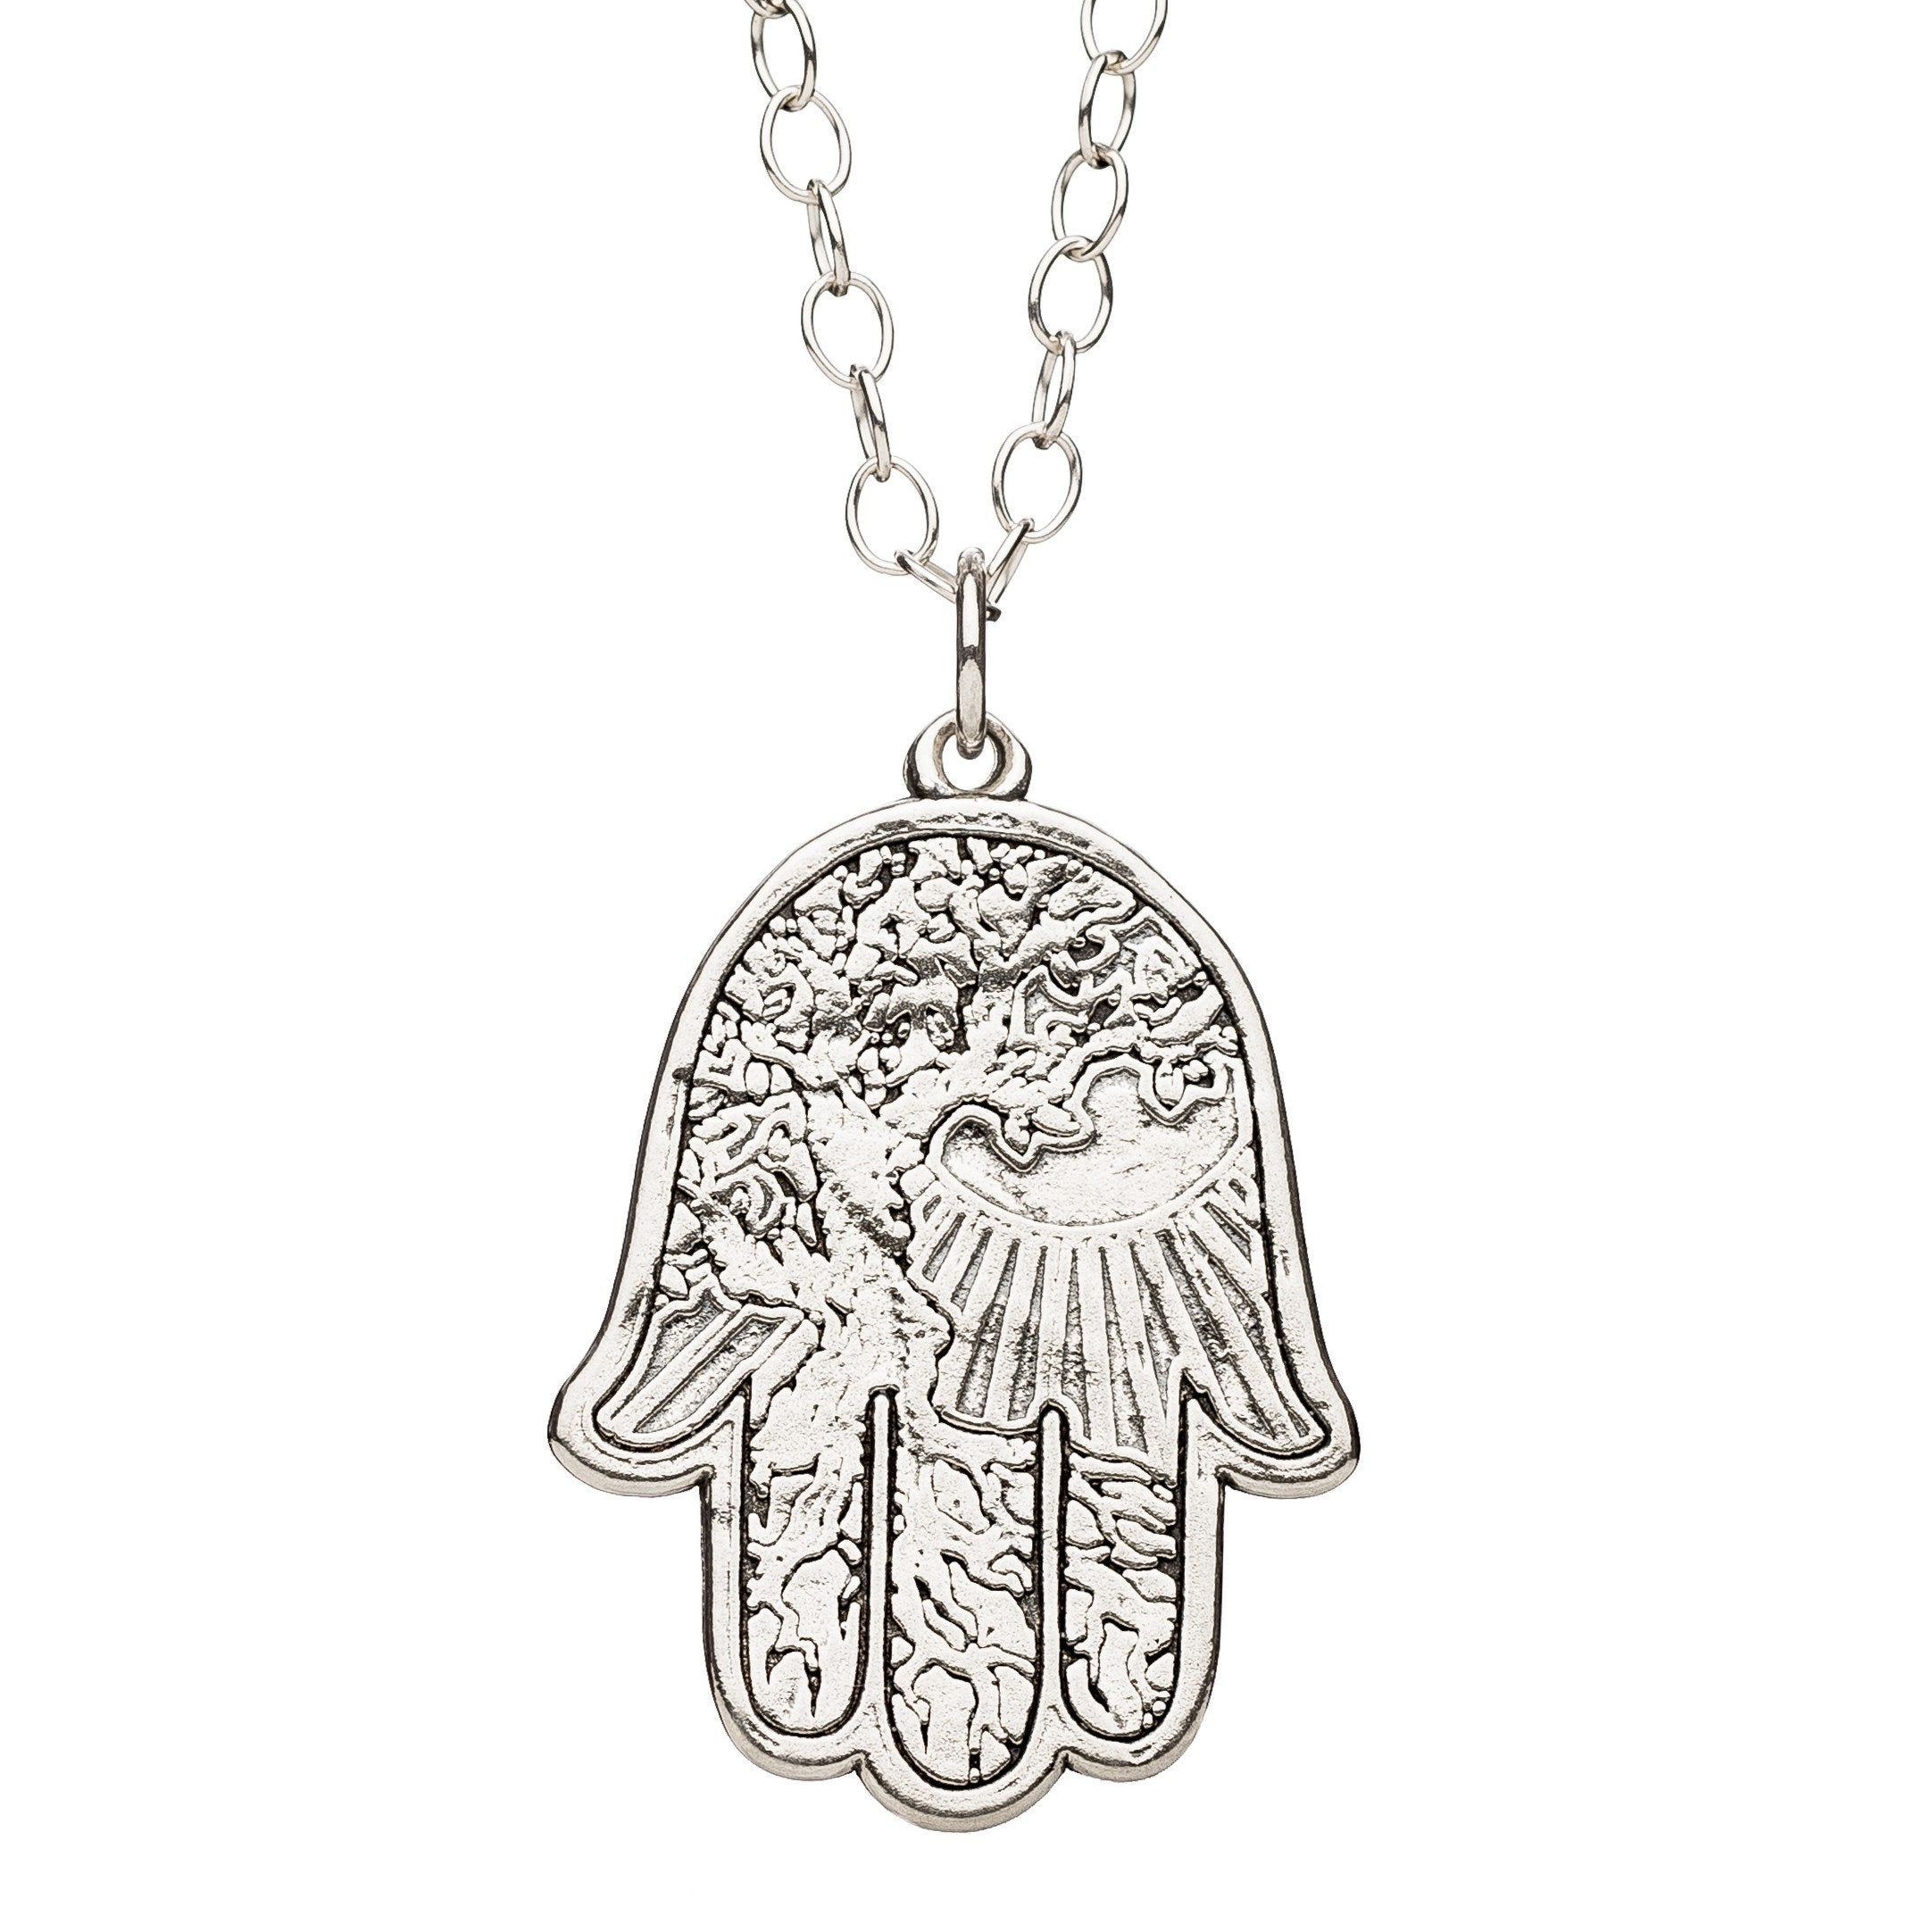 Hamsa Silver Necklace with Landscape Background